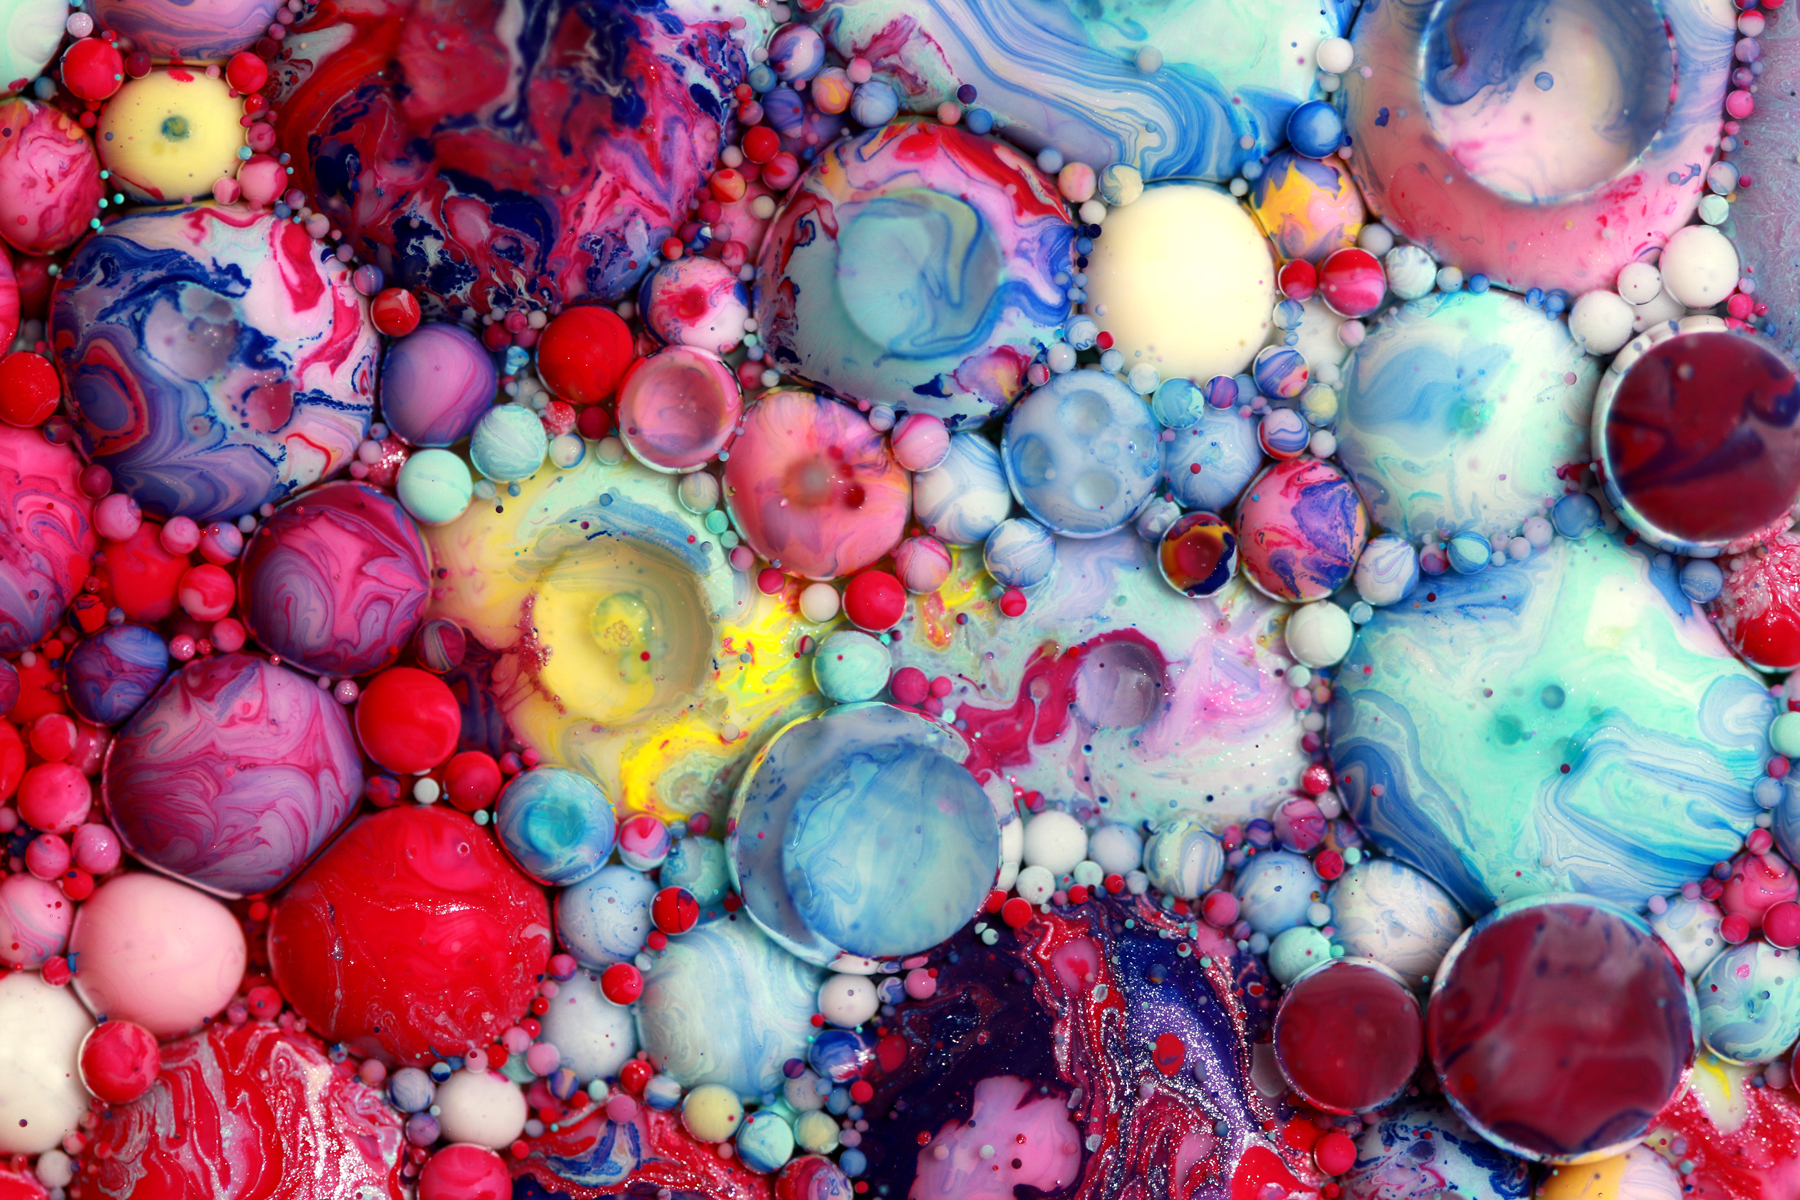 Artist Interview: Colorful and Mesmerizing Bubble Art by Seb Will Transport You To Another World!